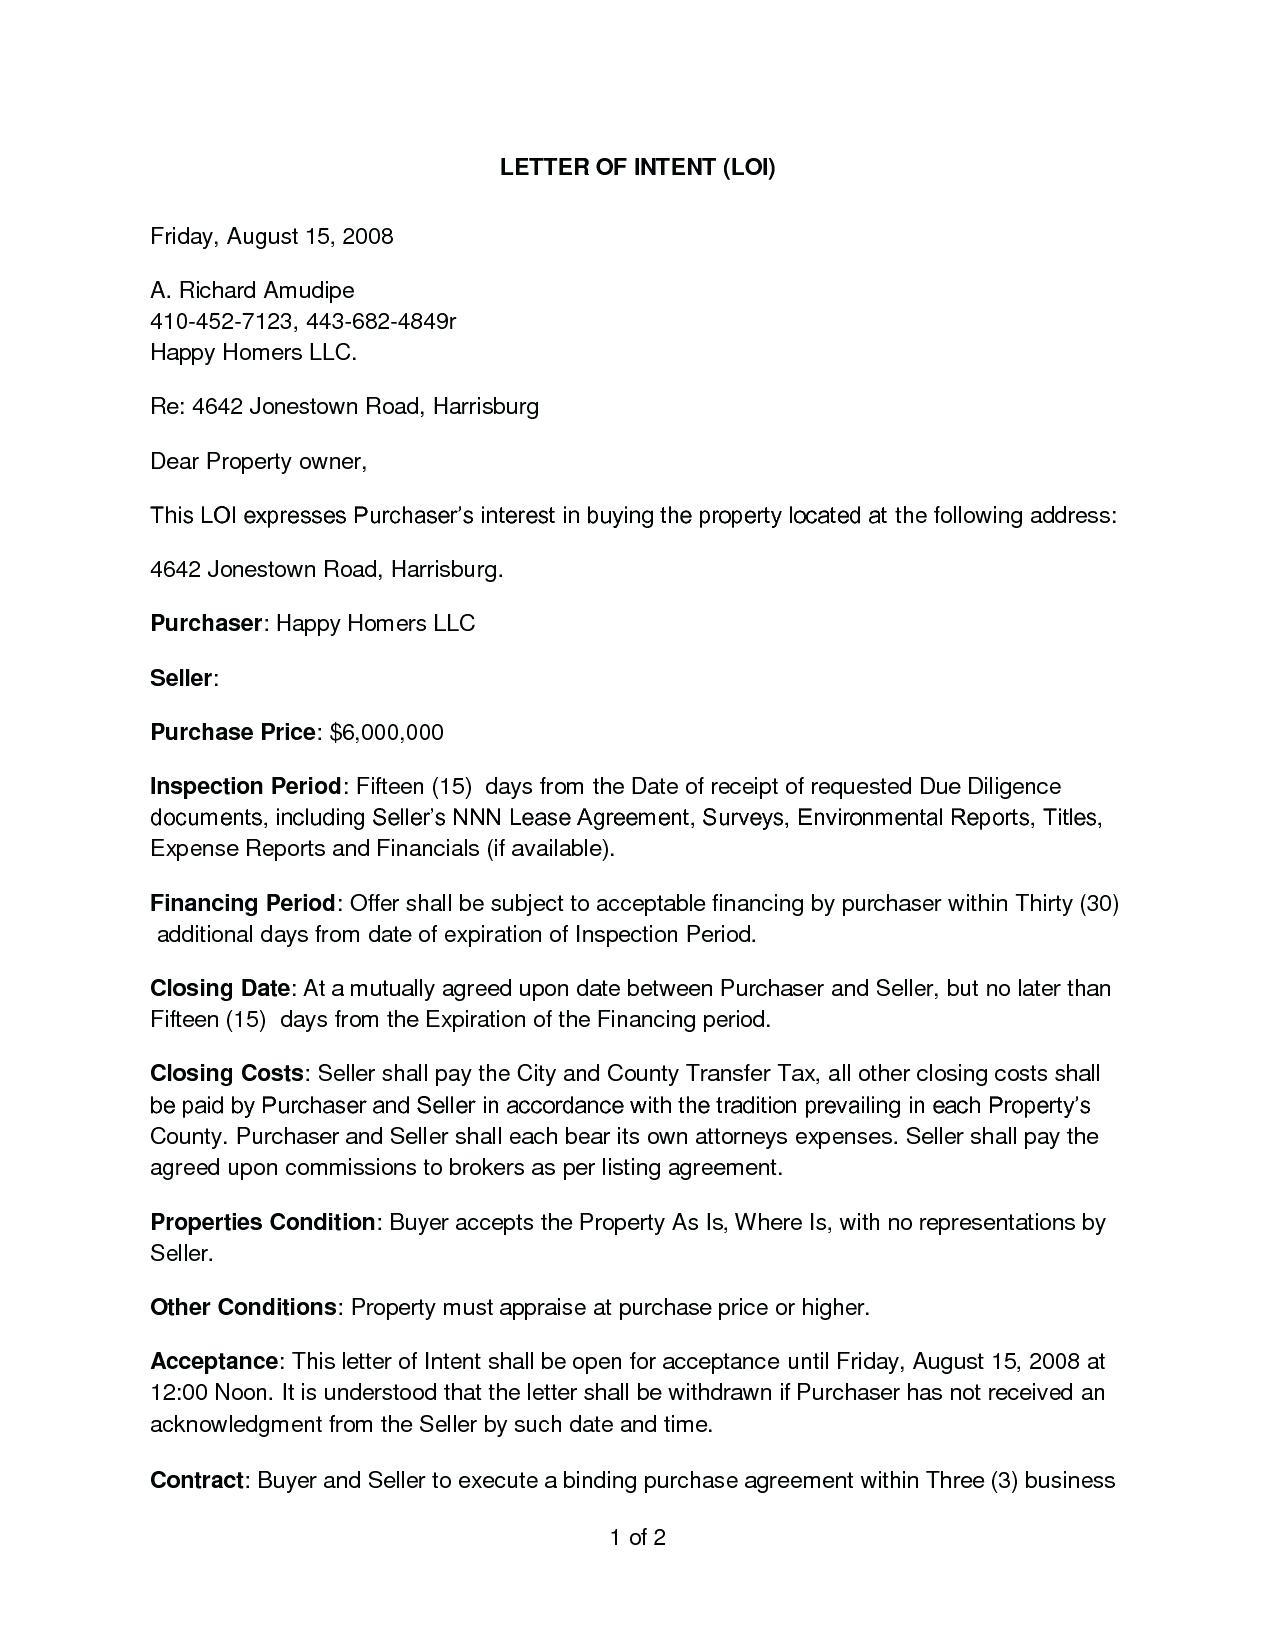 Letter Of Intent to Purchase Template - Letter Intent to Purchase Template Agreement Real Estate